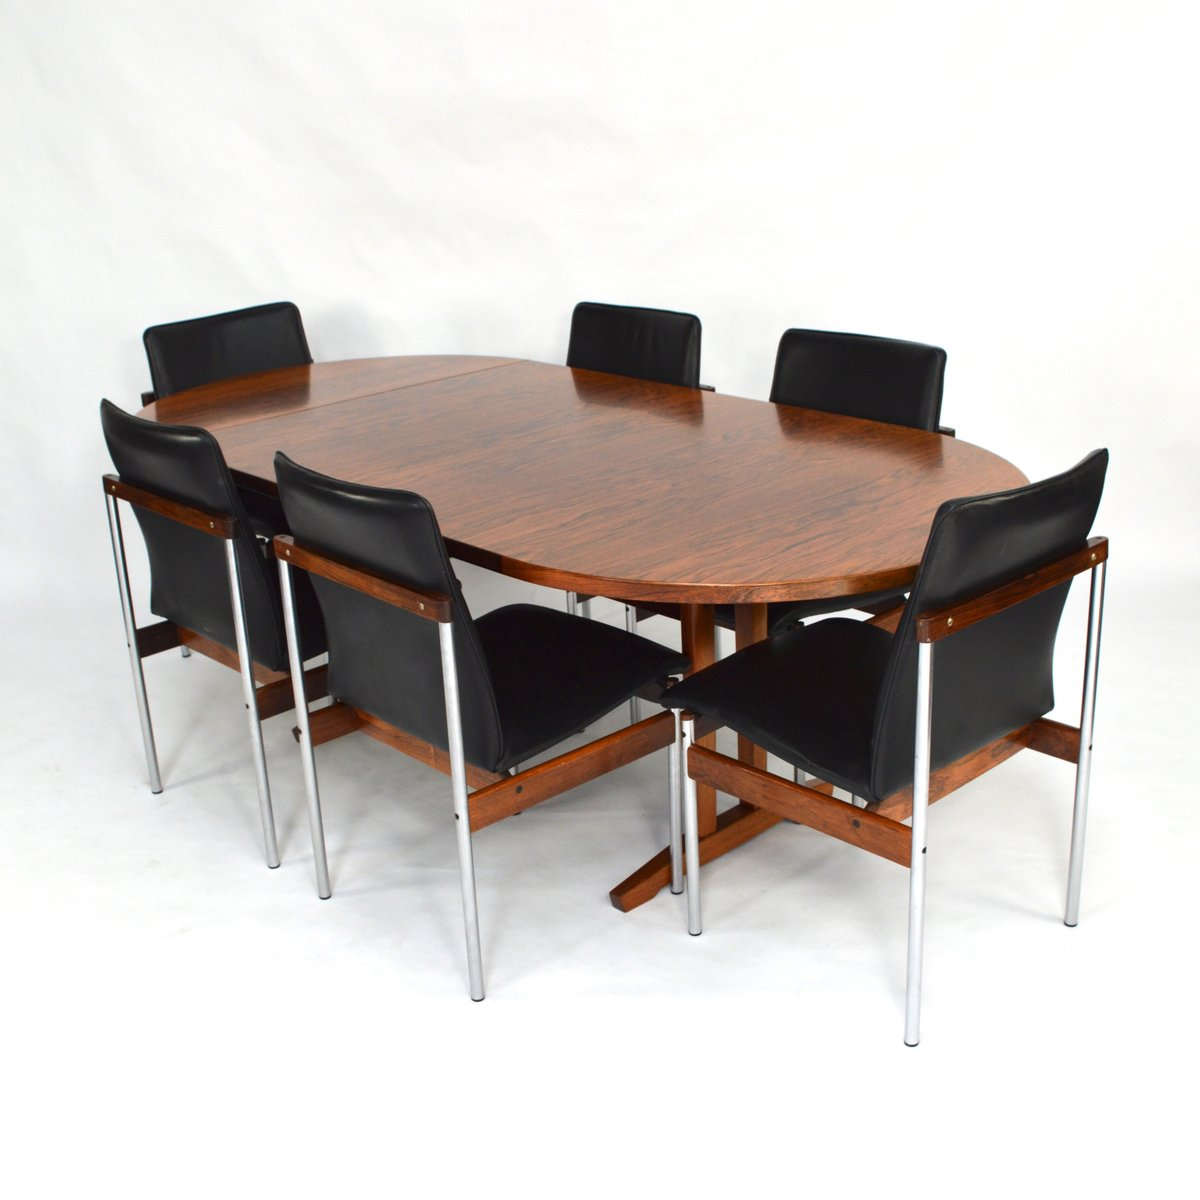 Brazilian Rosewood Dining Set 1960s for sale at Pamono : brazilian rosewood dining set 1960s 1 from www.pamono.co.uk size 1200 x 1200 jpeg 67kB